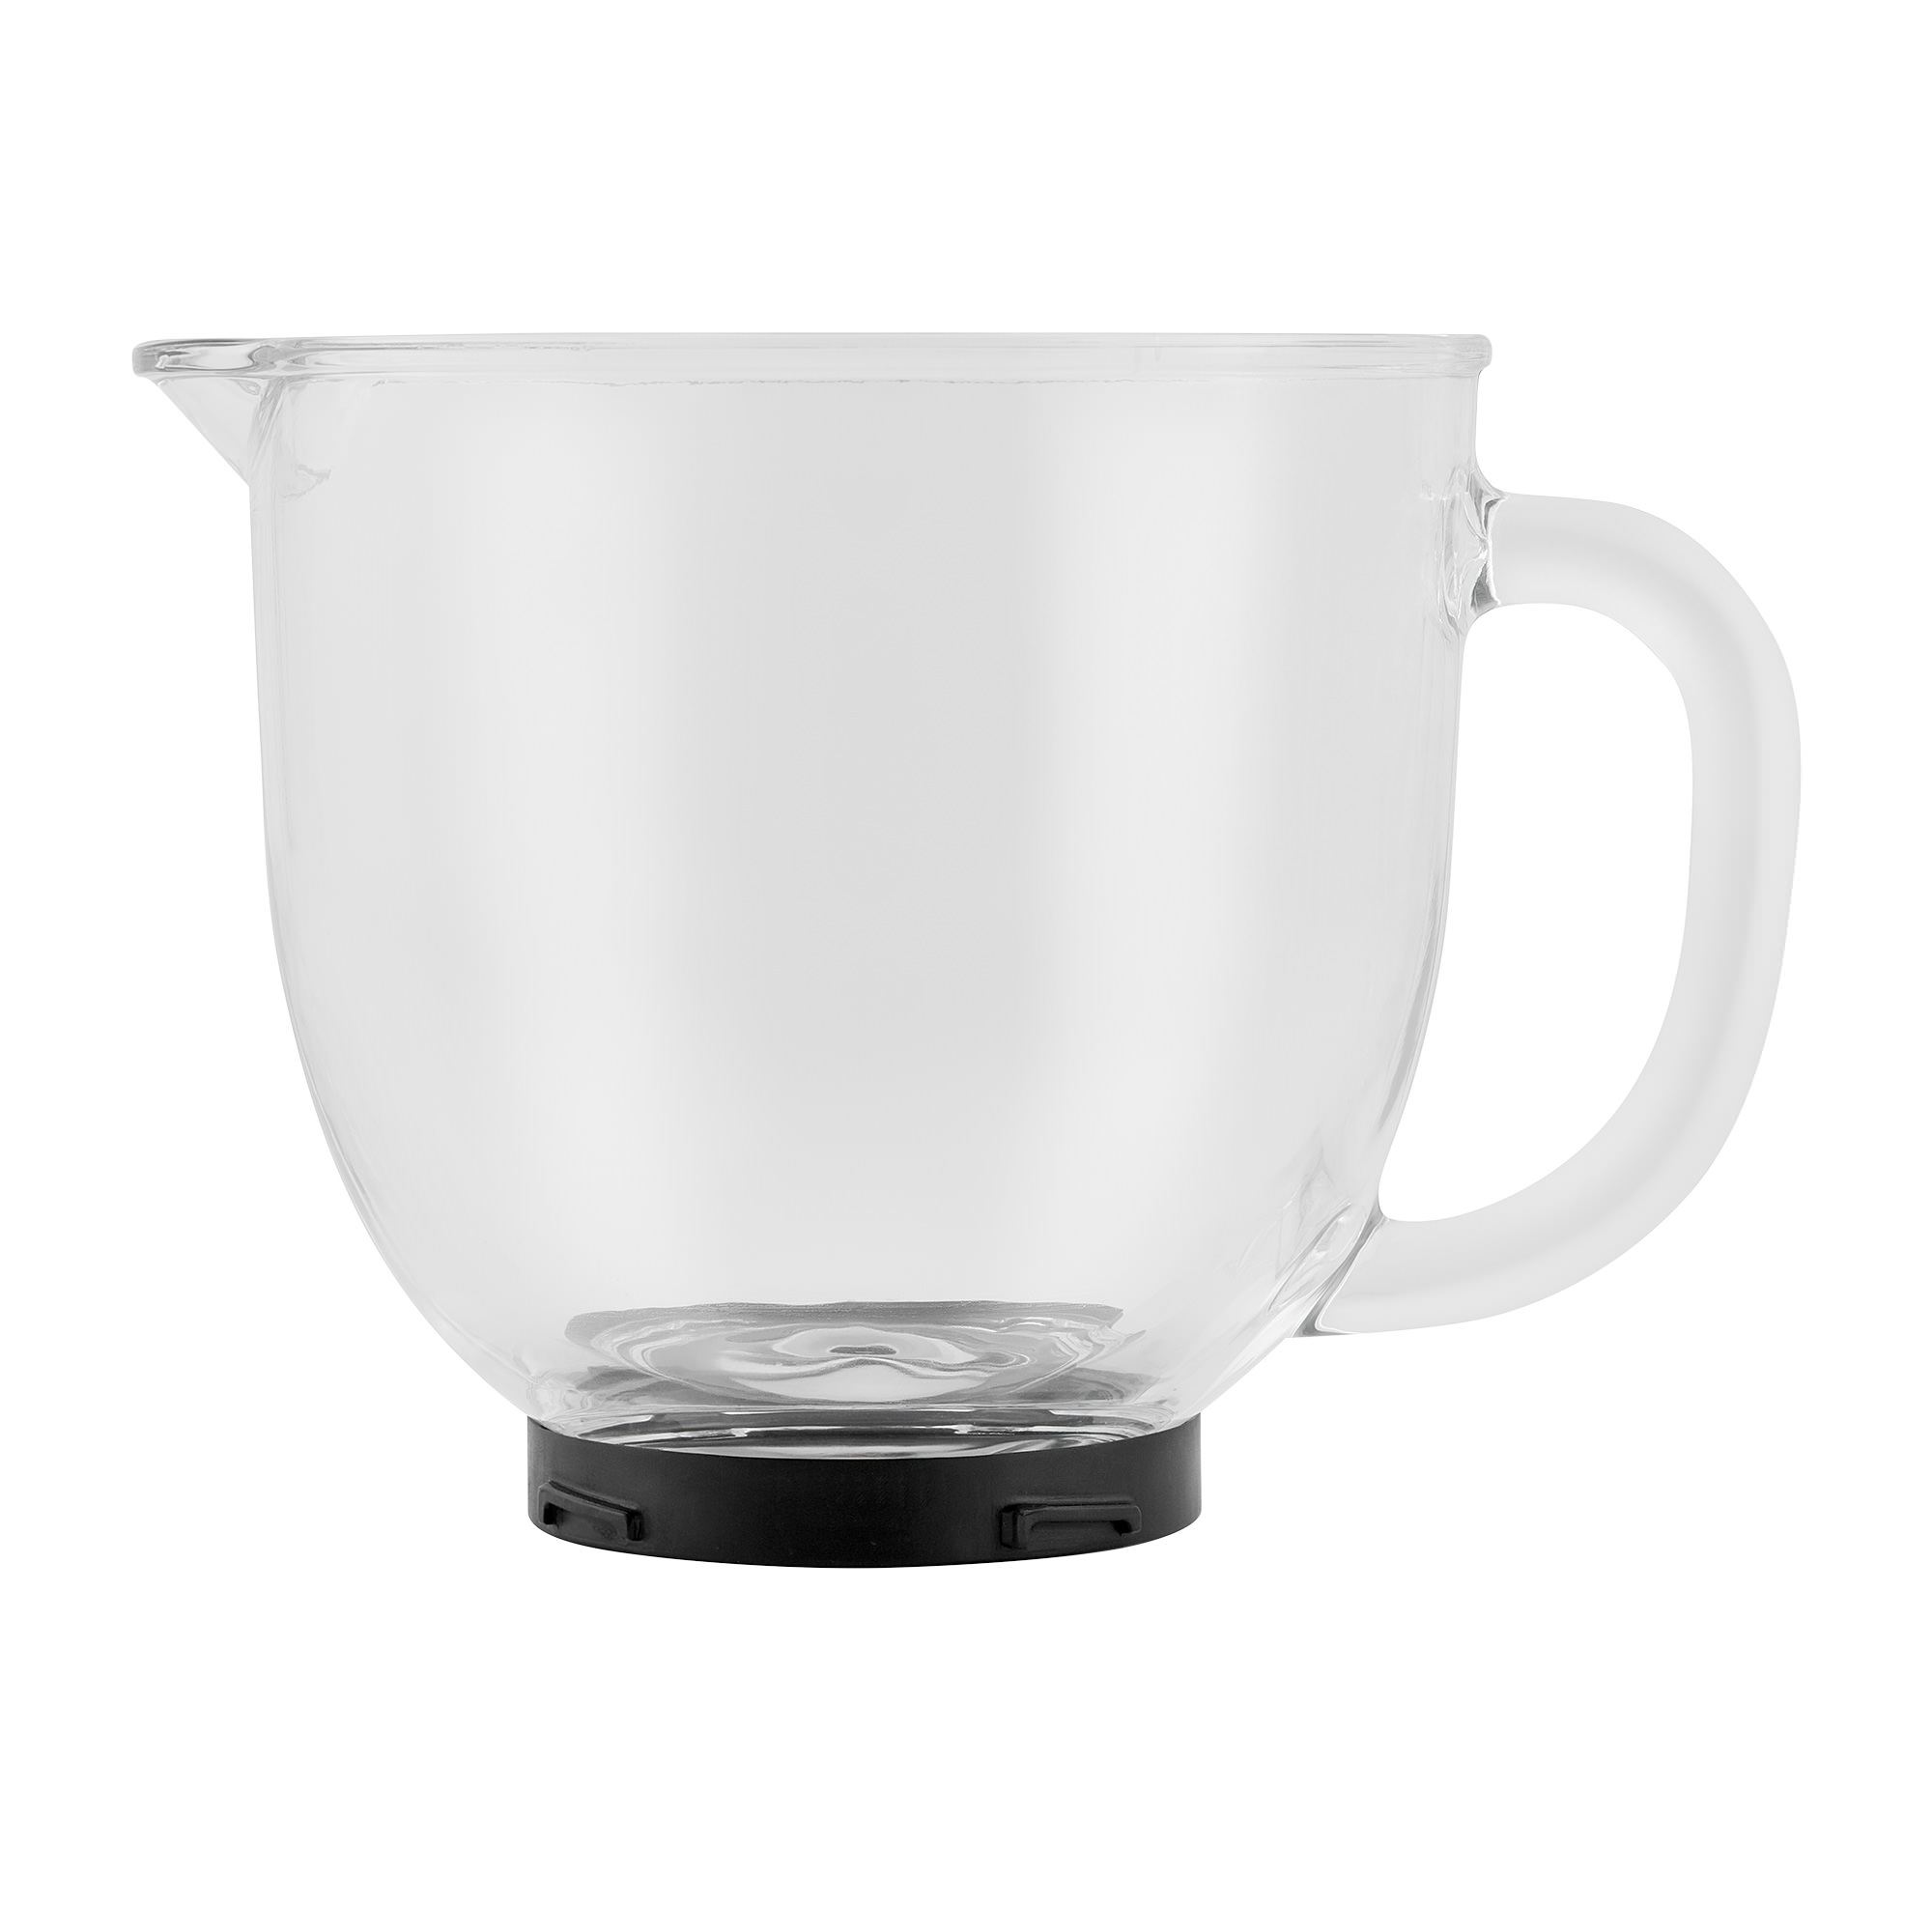 Sunbeam Mixmaster The Master One Glass Bowl 5L